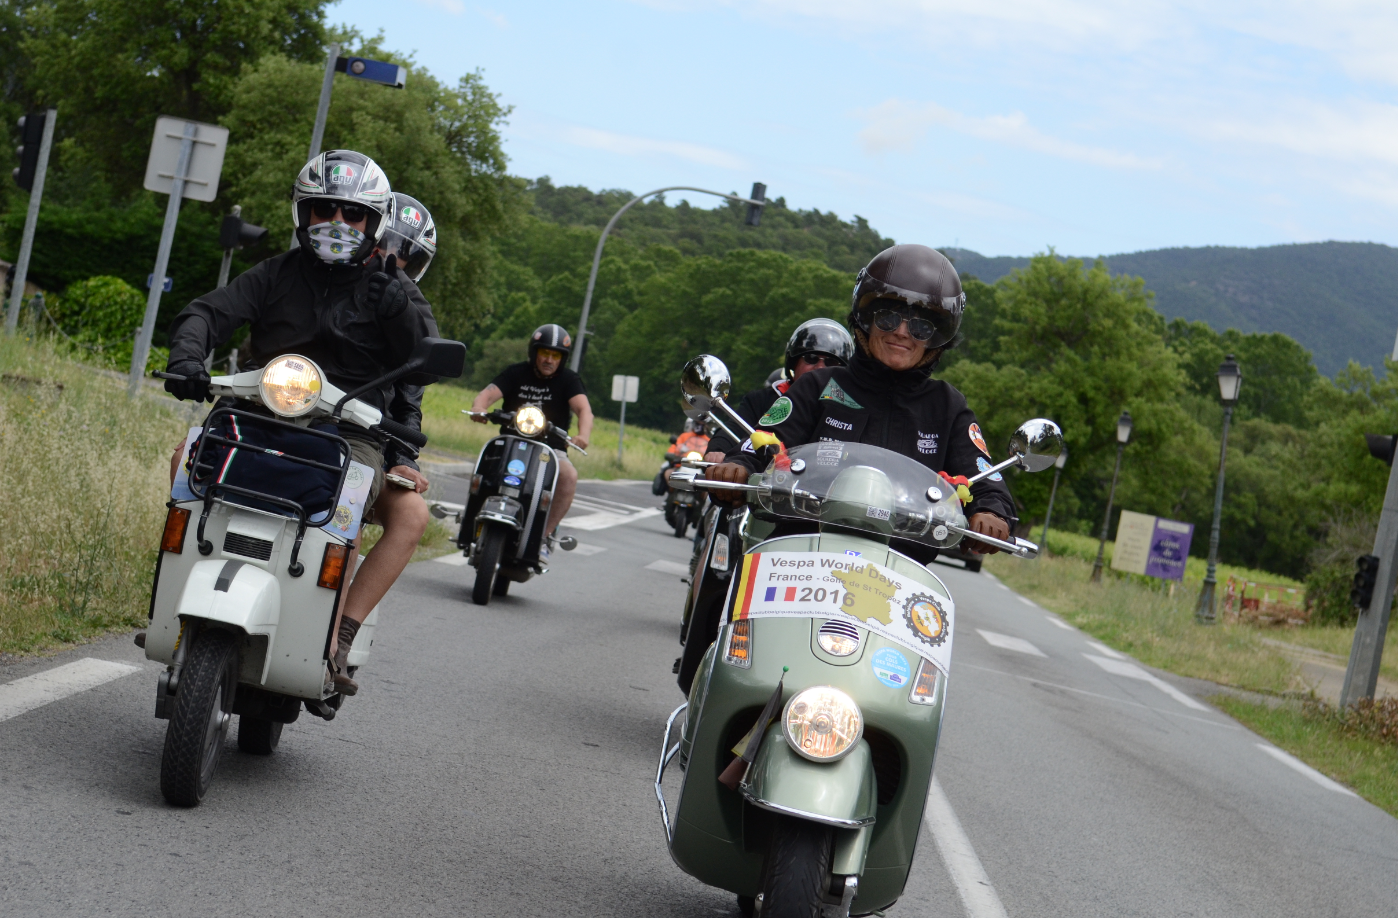 Vespa World Days, nagenieten